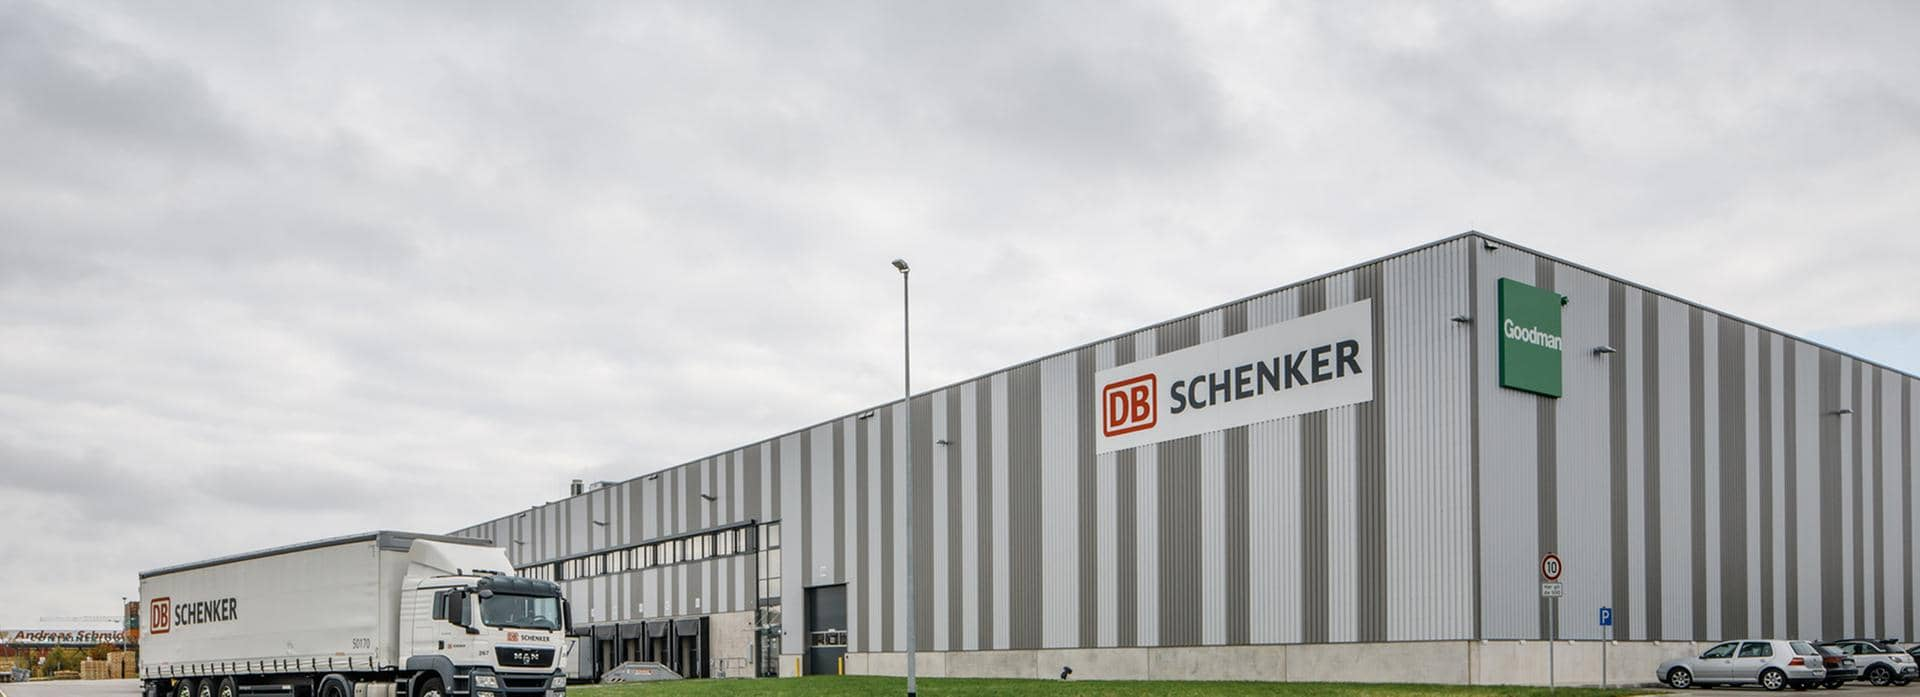 DB Schenker Logistics Center in Augsburg Germany